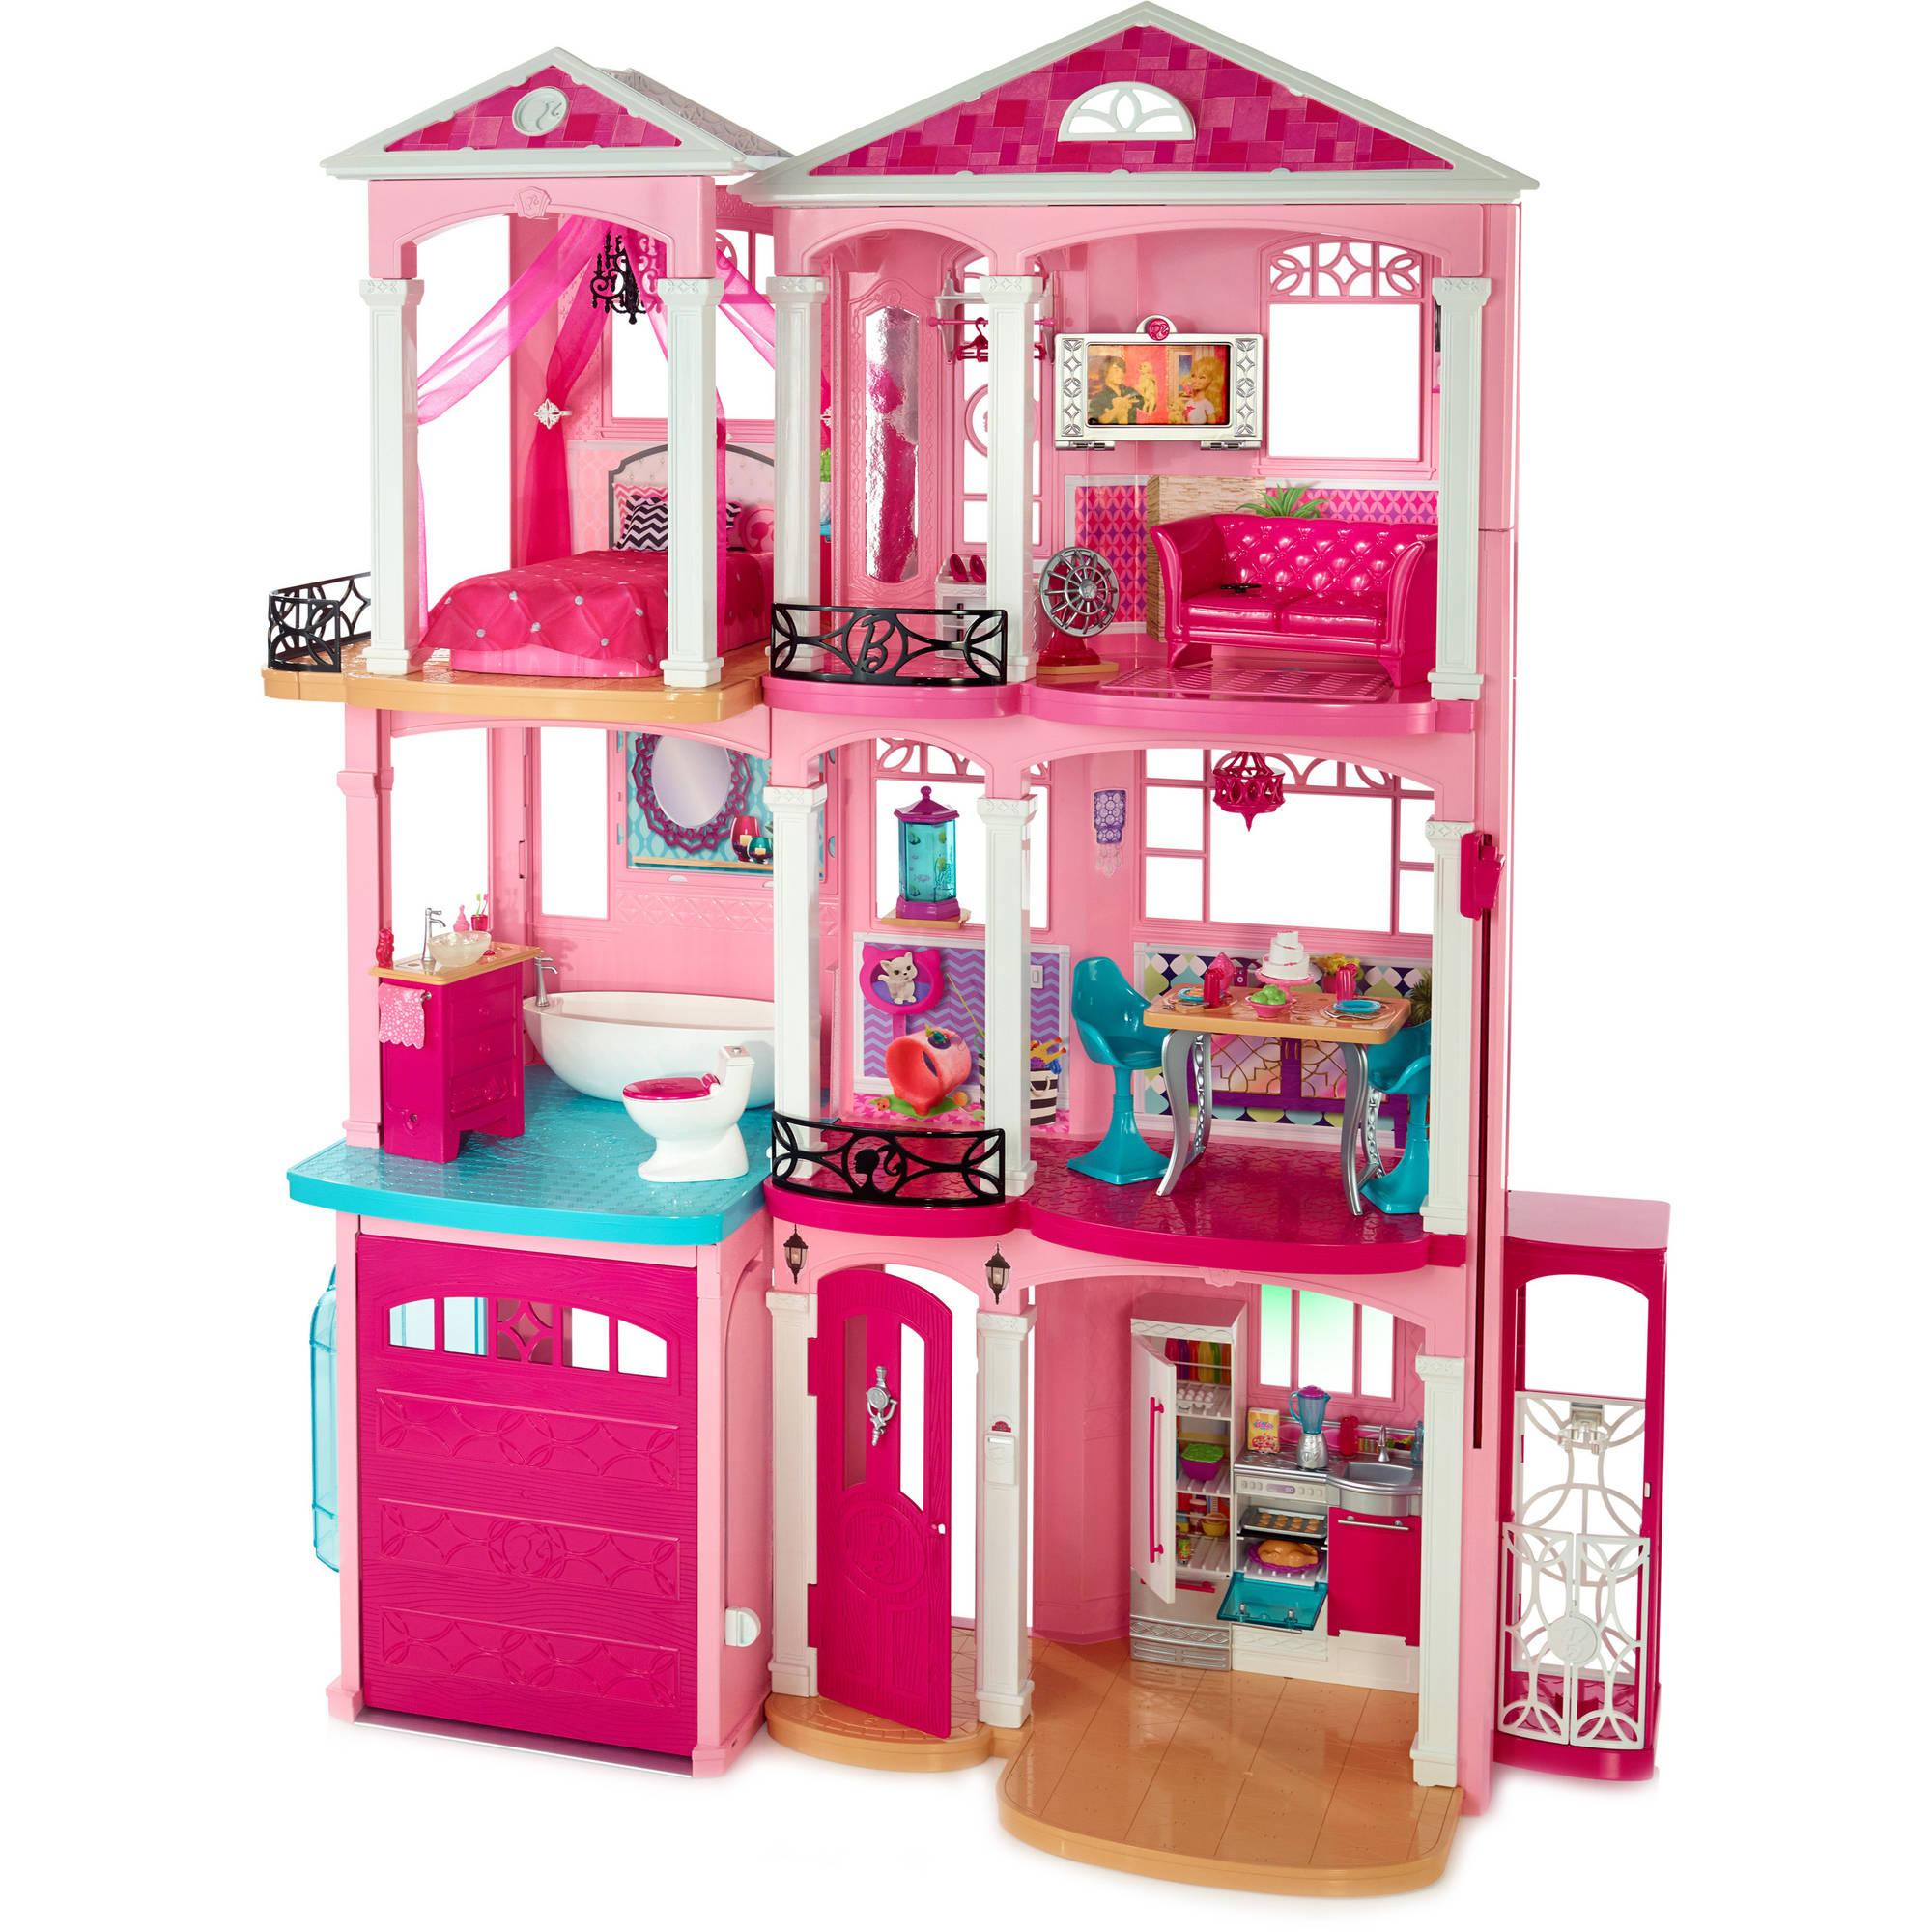 Compact Yet Luxurious Dream Home for a Pink-Loving Fashionista